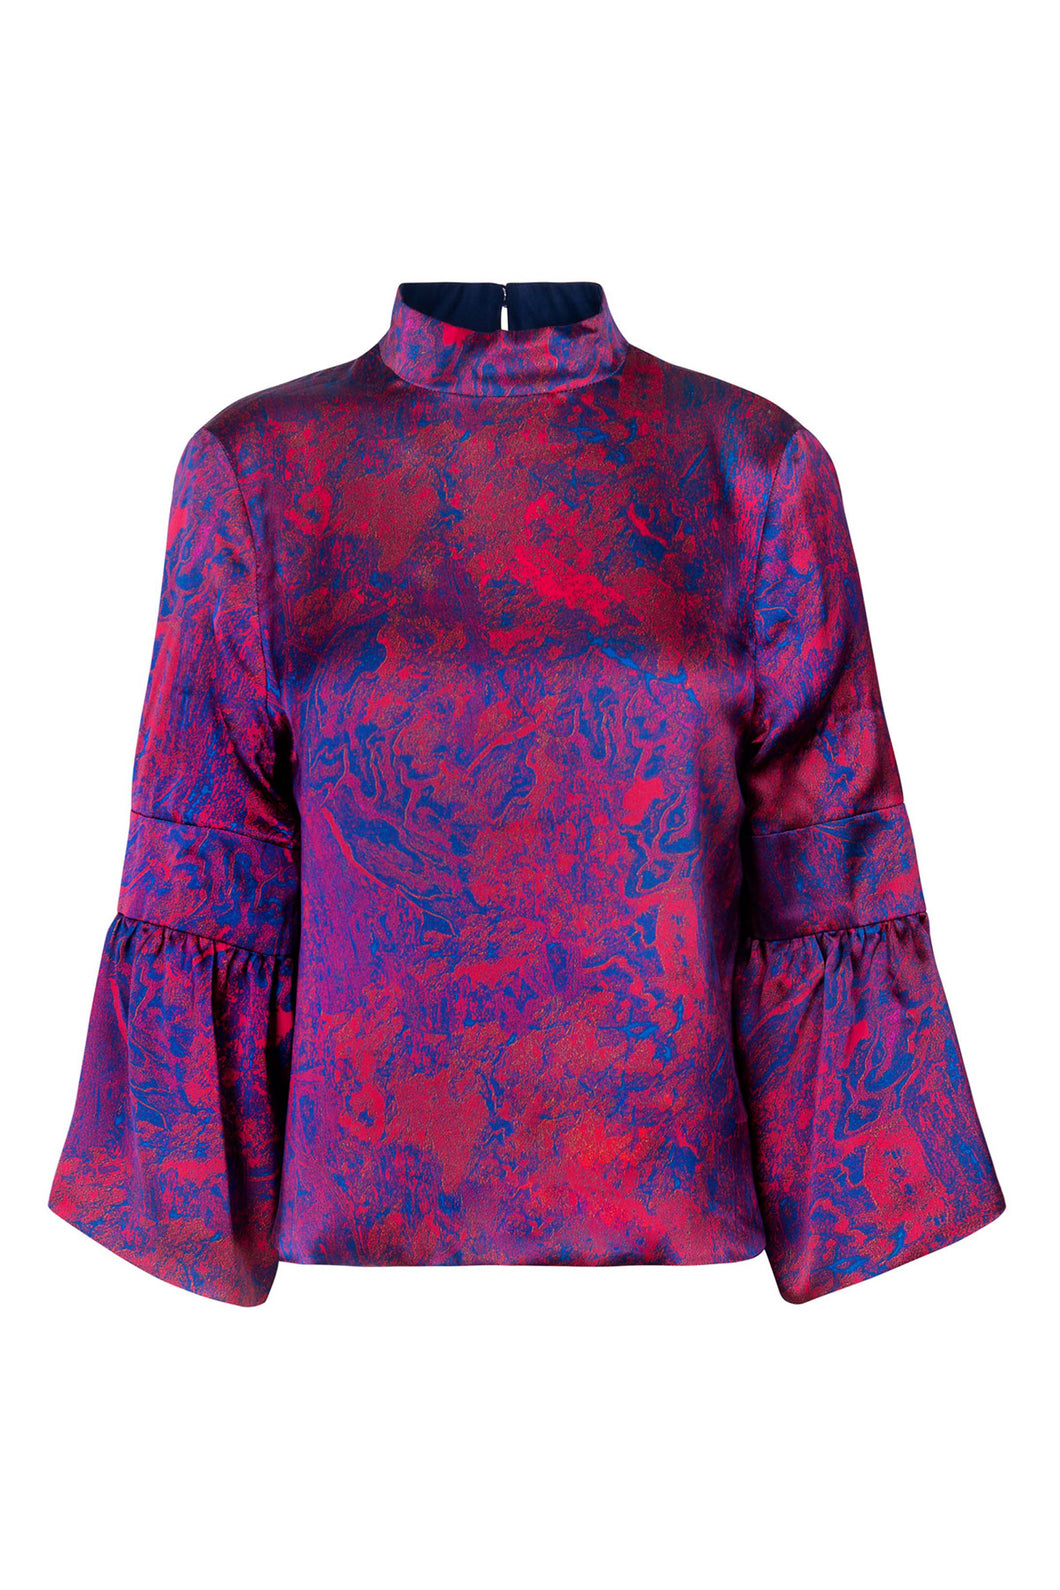 REVERSIBLE Tatiana Silk Satin Top - Fire Ocean/Navy